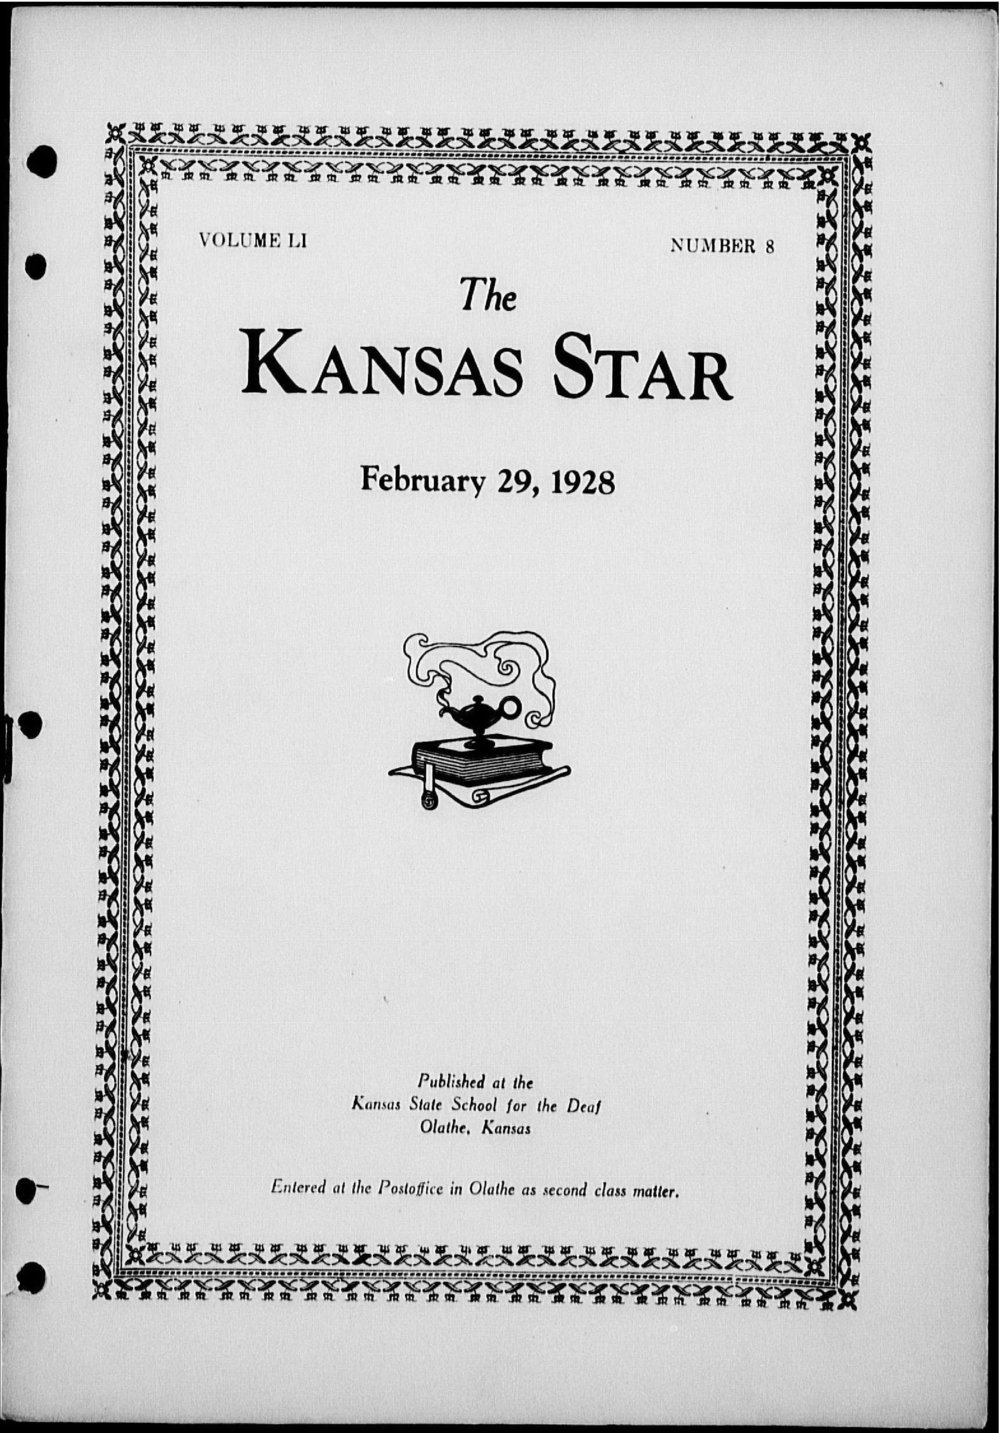 The Kansas Star, volume 51, number 8 - Front cover